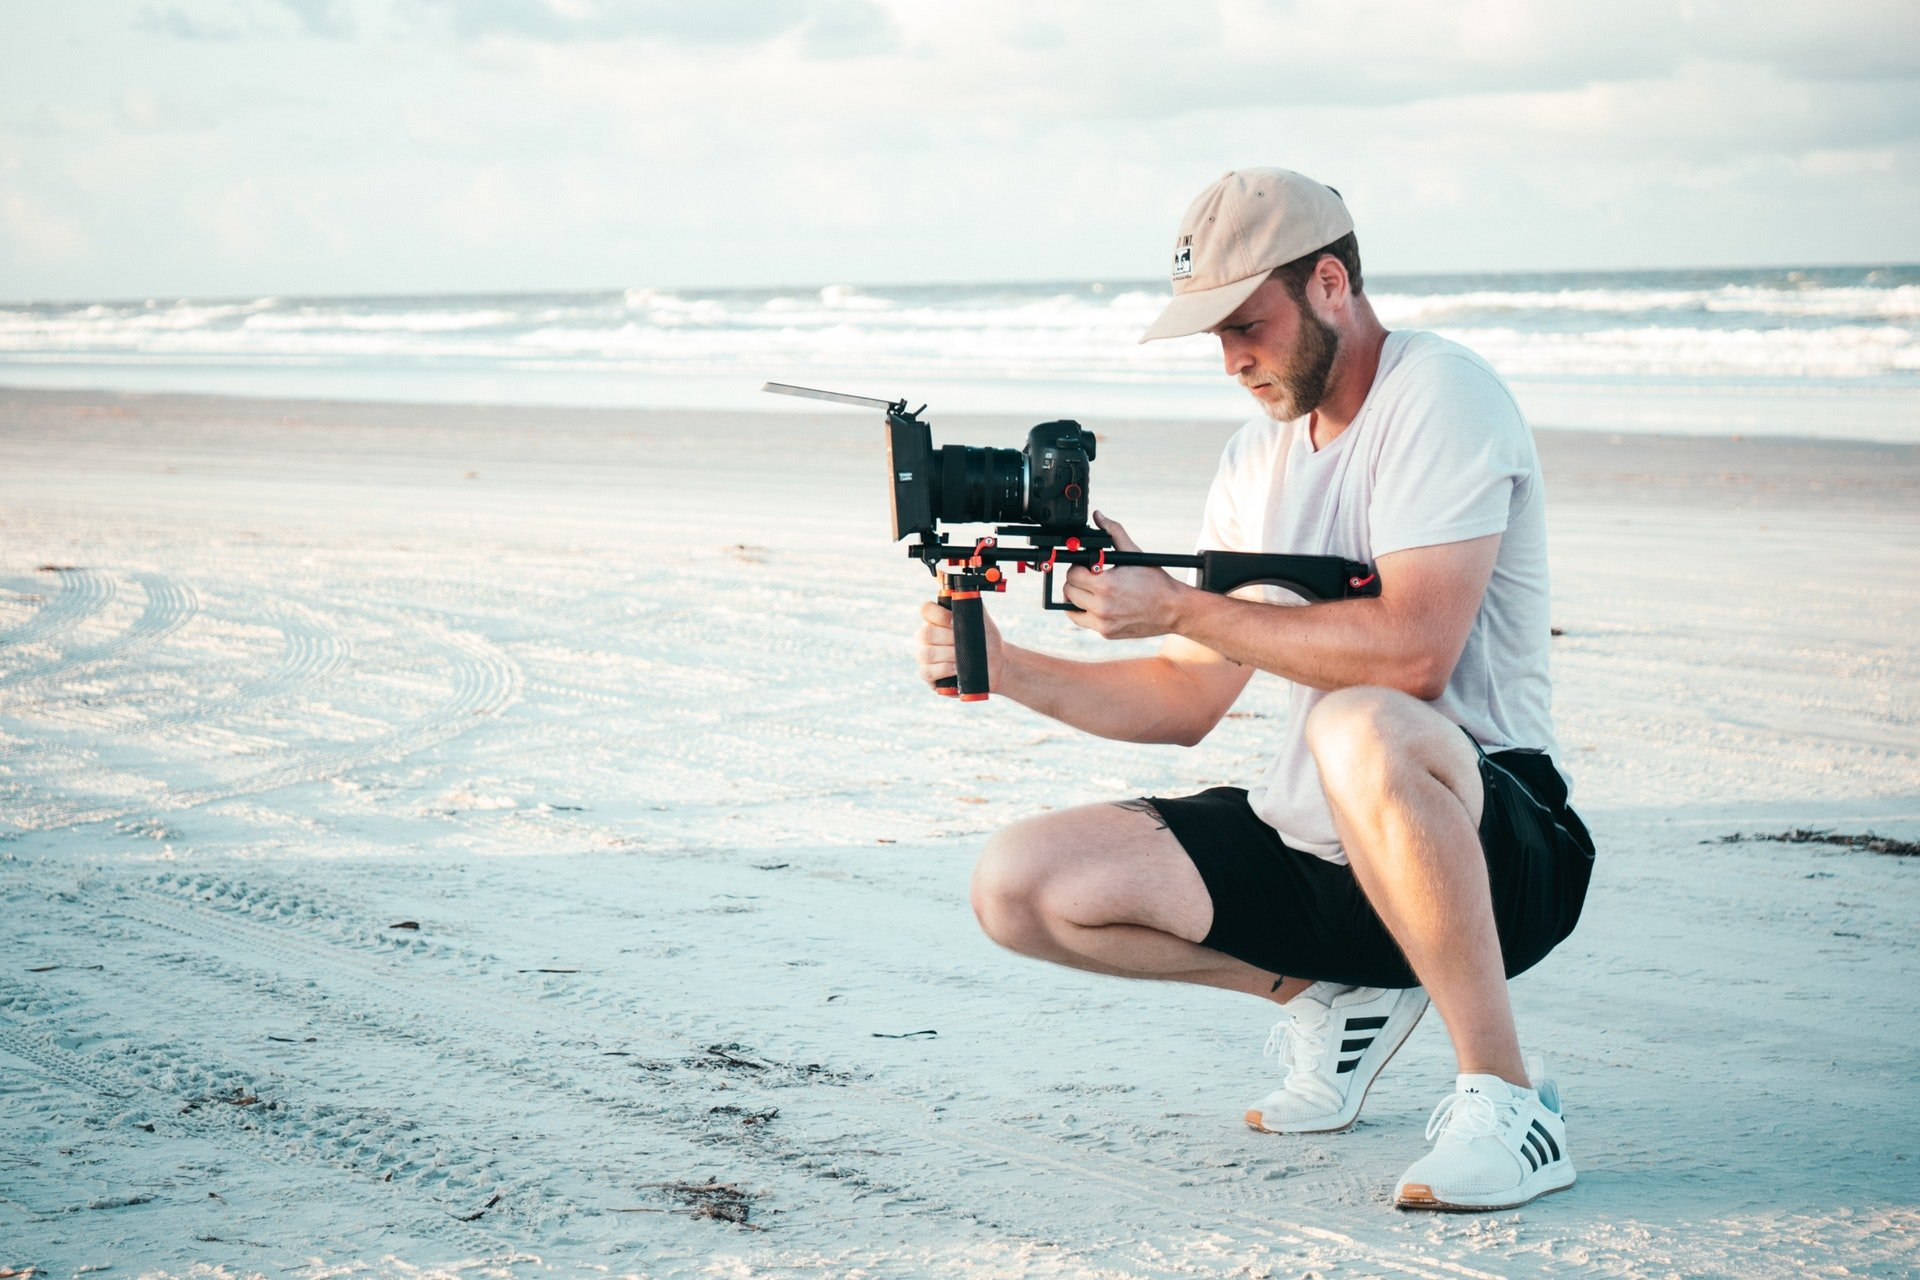 awesome ideas for video marketing content